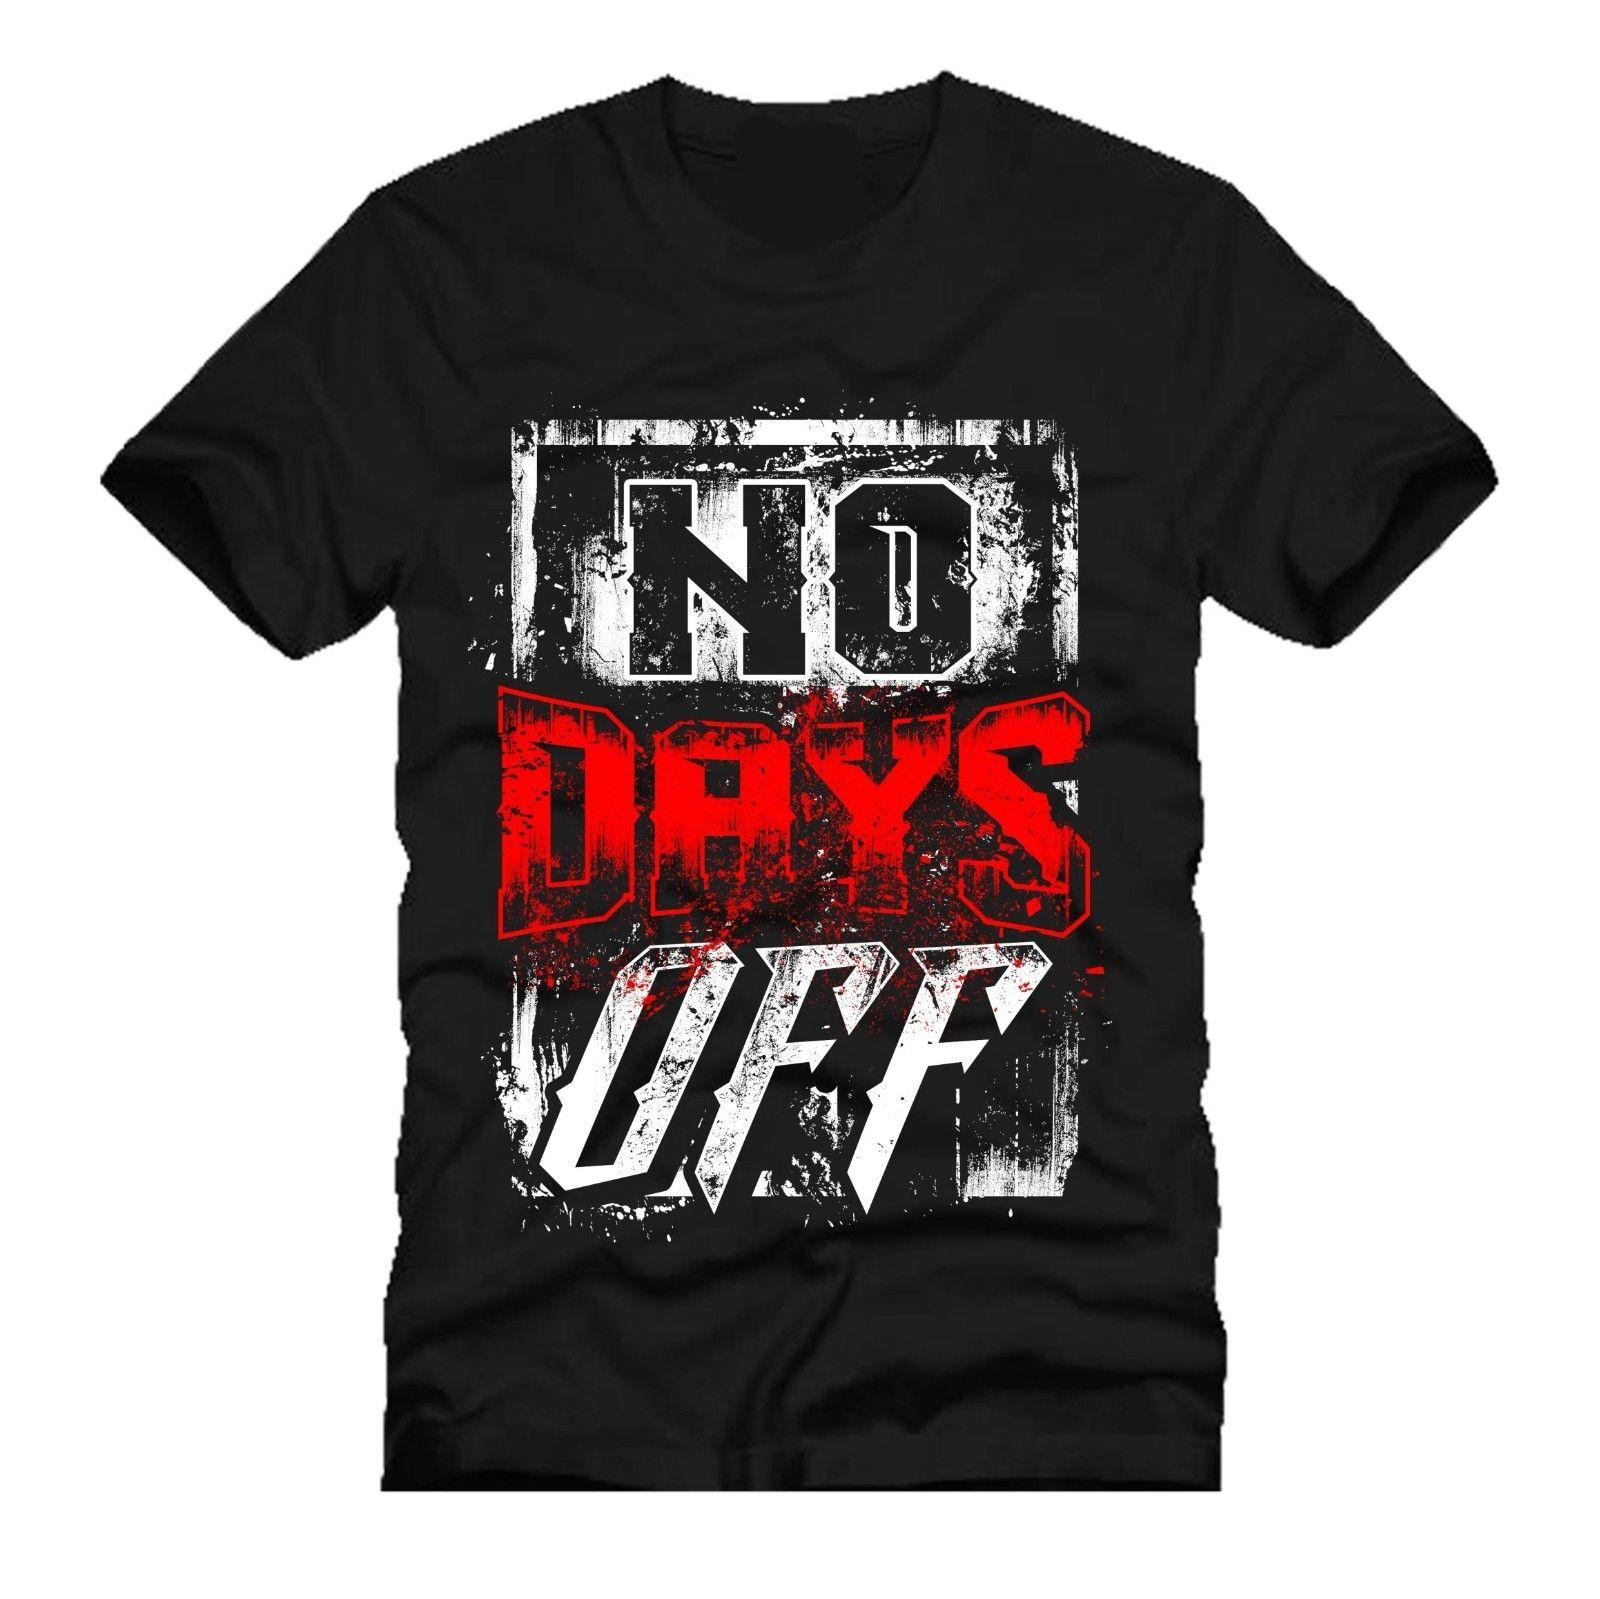 97328d67c NO DAYS OFF Gym Weights Pump Iron Mashup Dtg Mens T Shirt Tees NEW 2018  Funny Printed Shirts Cool Tee Shirts Designs From Flairmerchan, $11.01   DHgate.Com